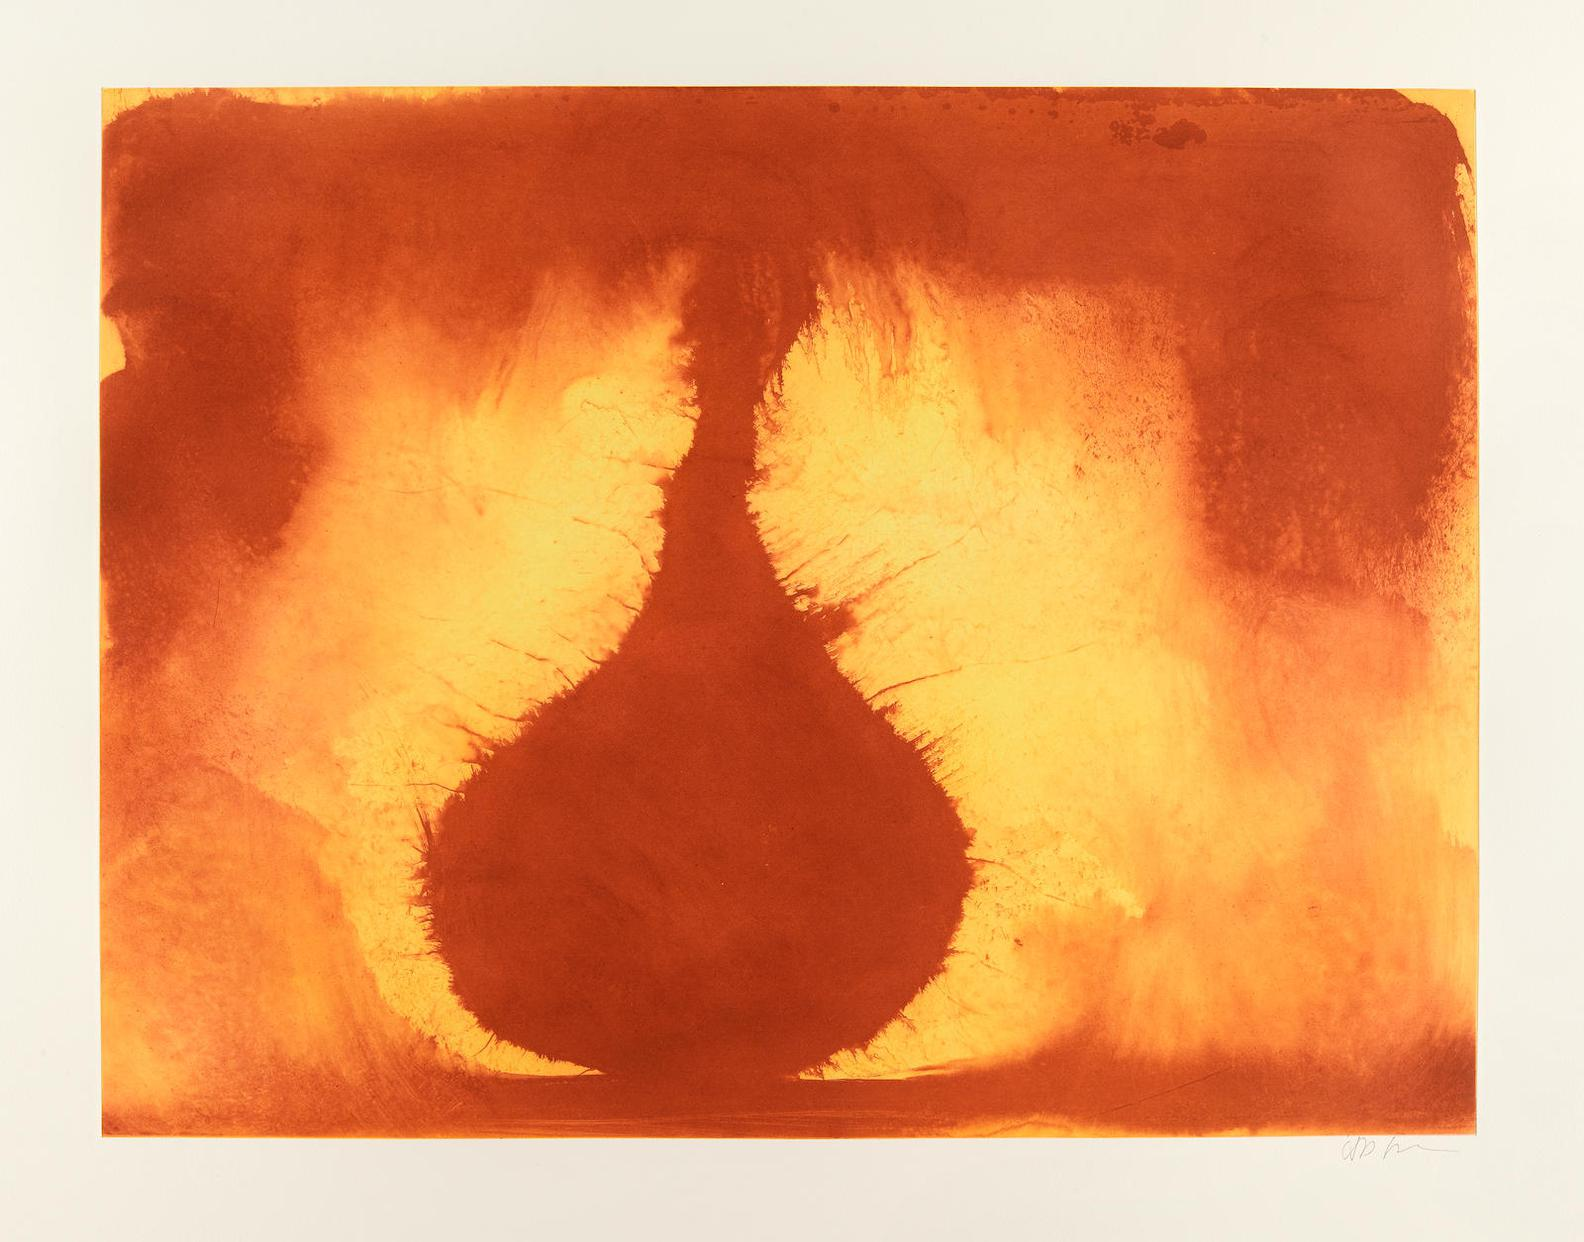 Anish Kapoor-Untitled 6, From 12 Etchings-2007